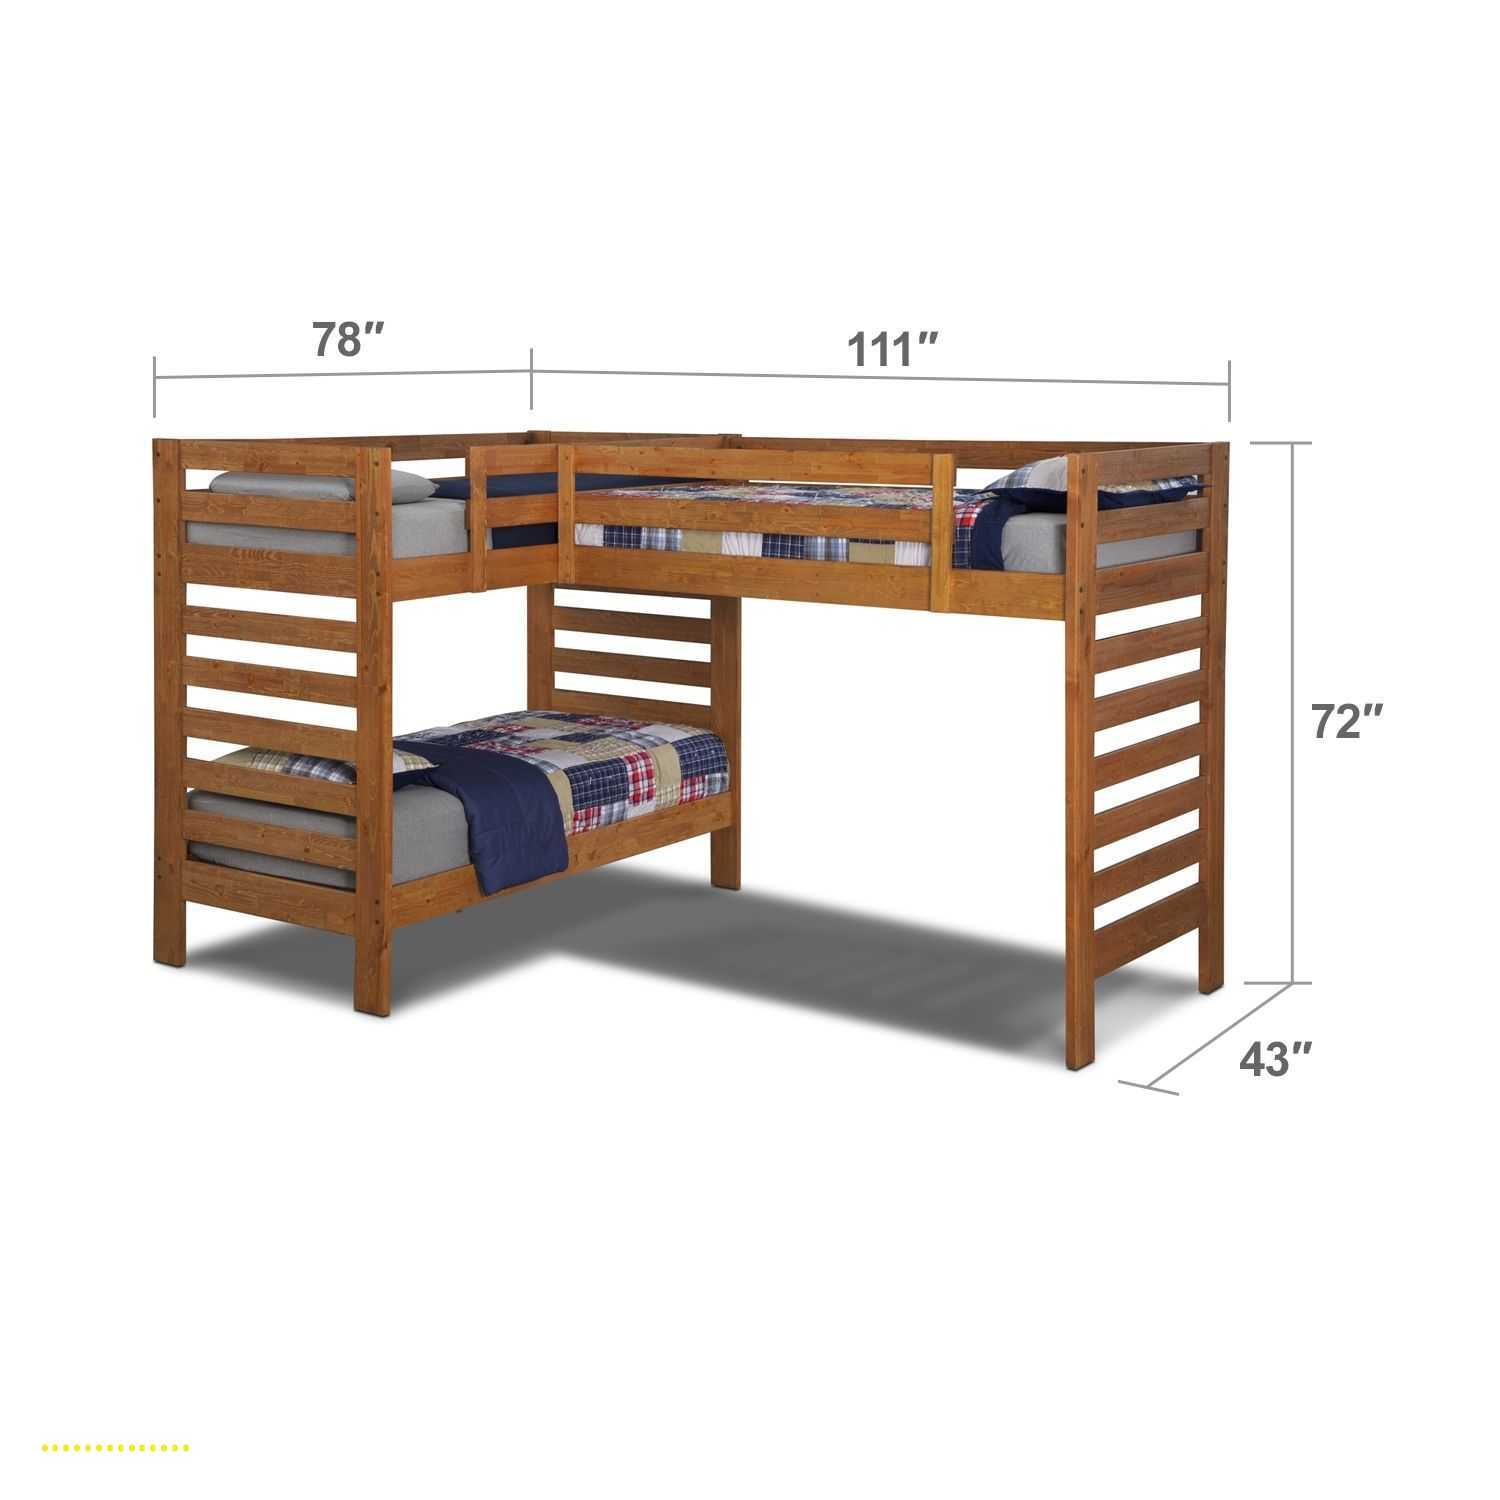 1500x1500 Fresh Bunk Bed Drawing Home Design